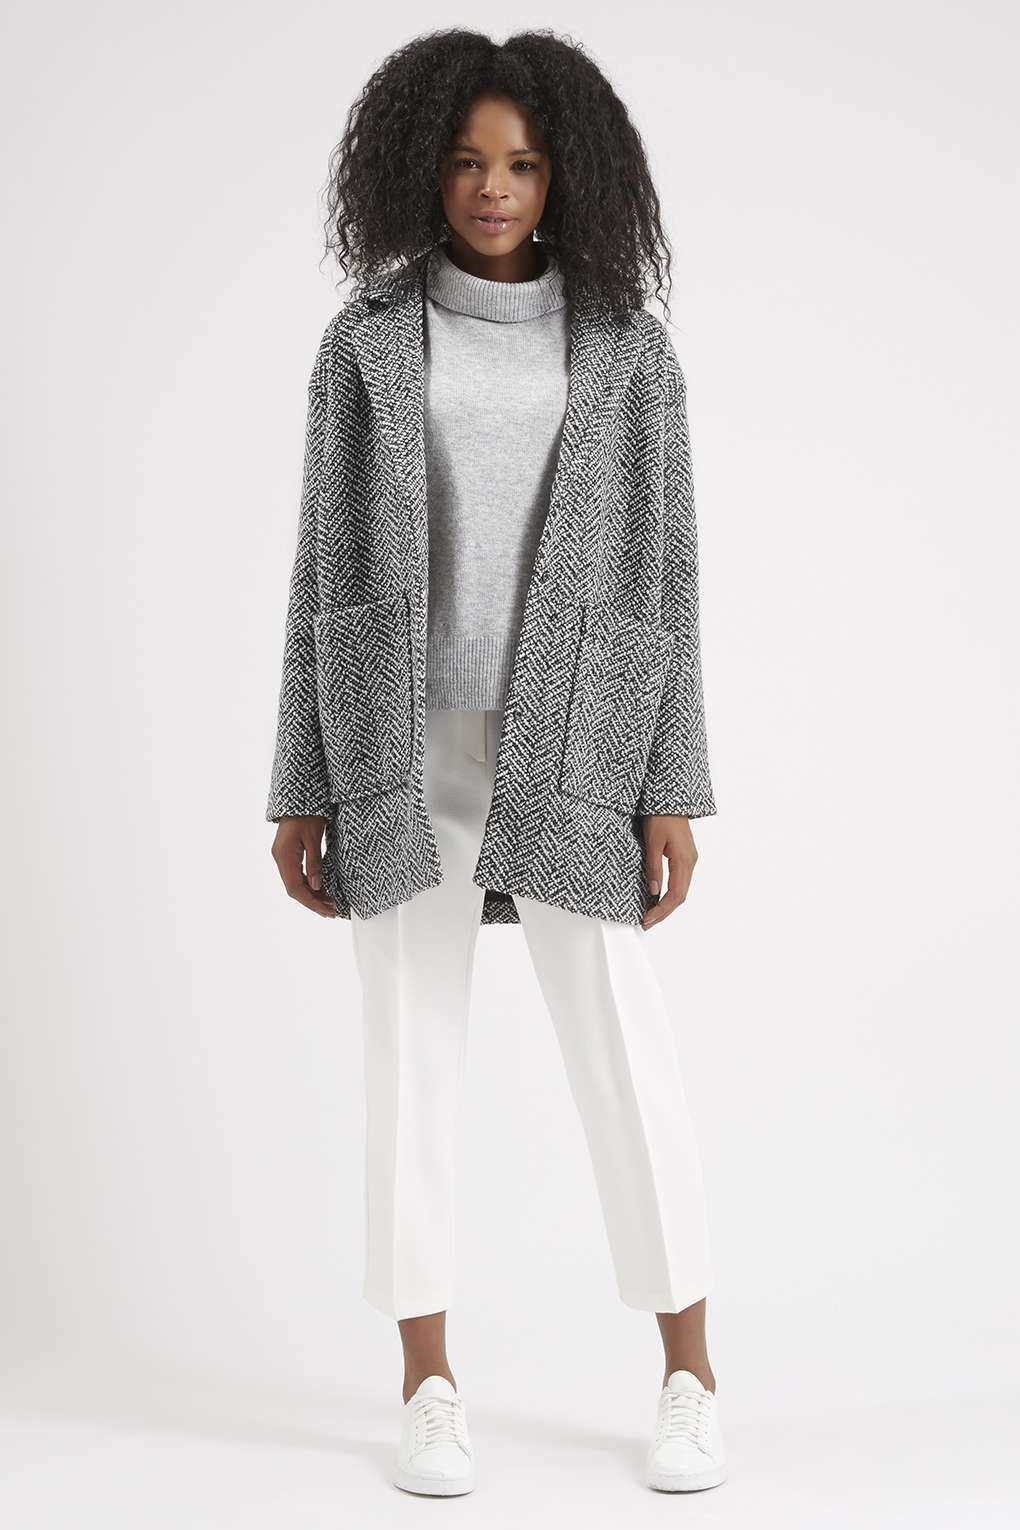 Textured Wool Ovoid Jacket - Coats - Clothing | Coats, Topshop and ...